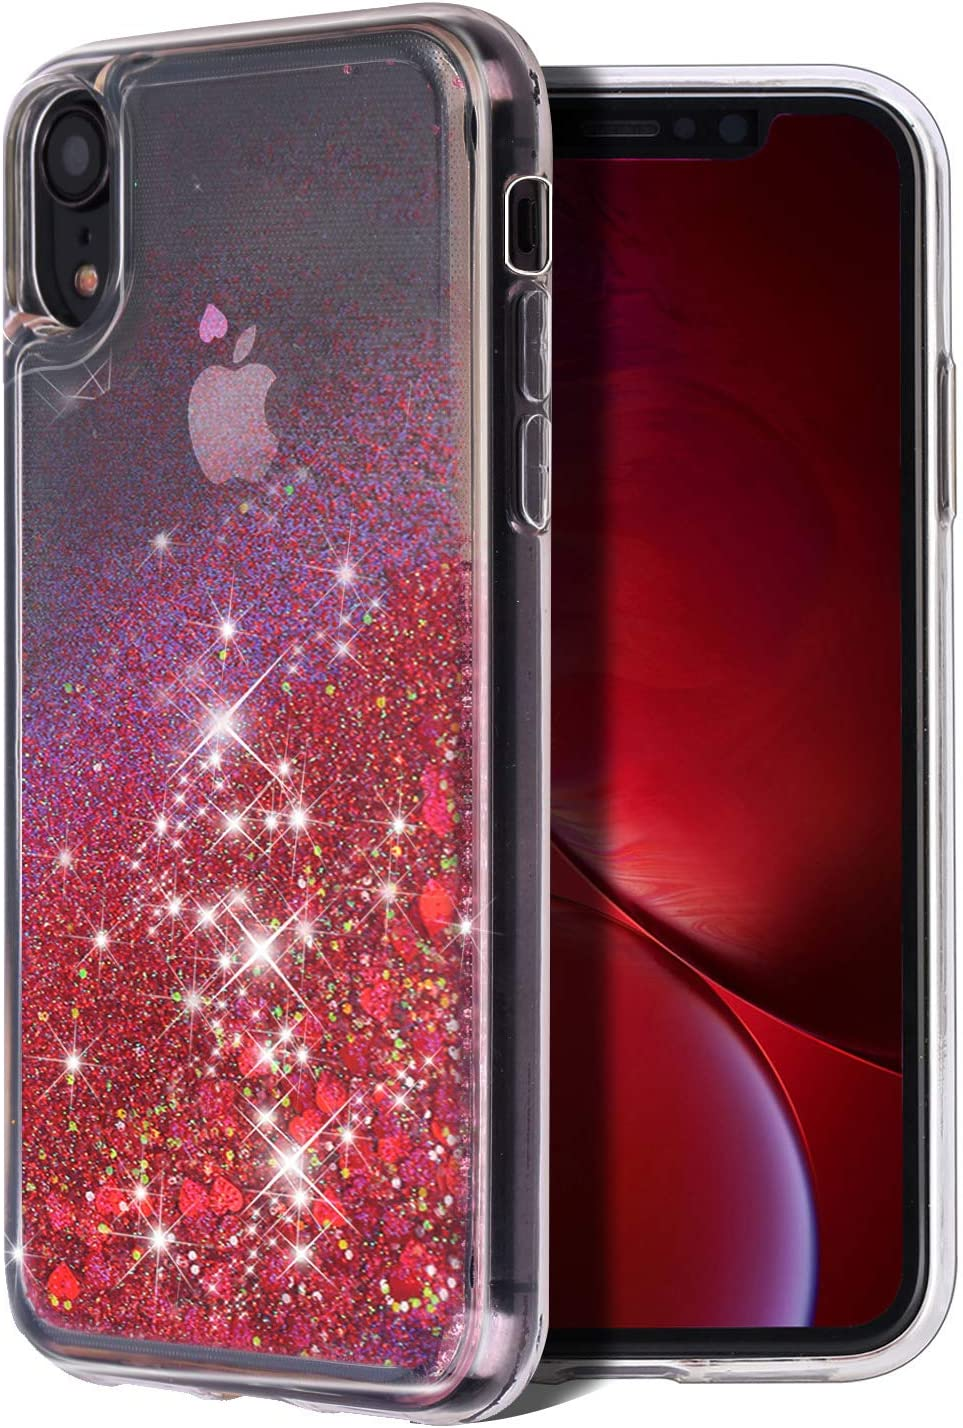 for iPhone XR Case, WORLDMOM Double Layer Design Bling Flowing Liquid Floating Sparkle Colorful Glitter Waterfall TPU Protective Phone Case for Apple iPhone XR [6.1 Inch 2018], Red